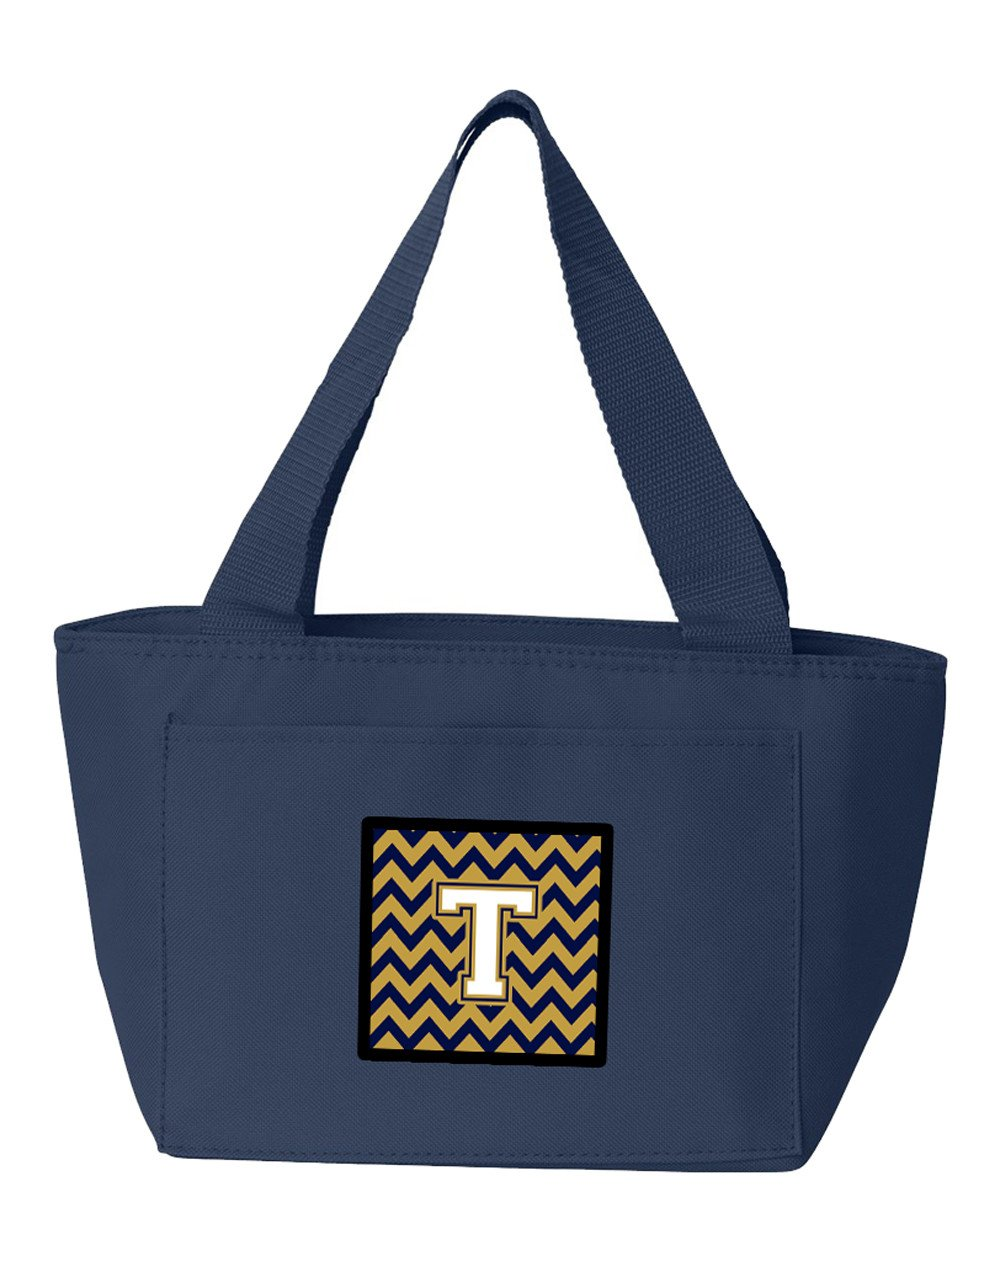 Letter T Chevron Navy Blue and Gold Lunch Bag CJ1057-TNA-8808 by Caroline's Treasures